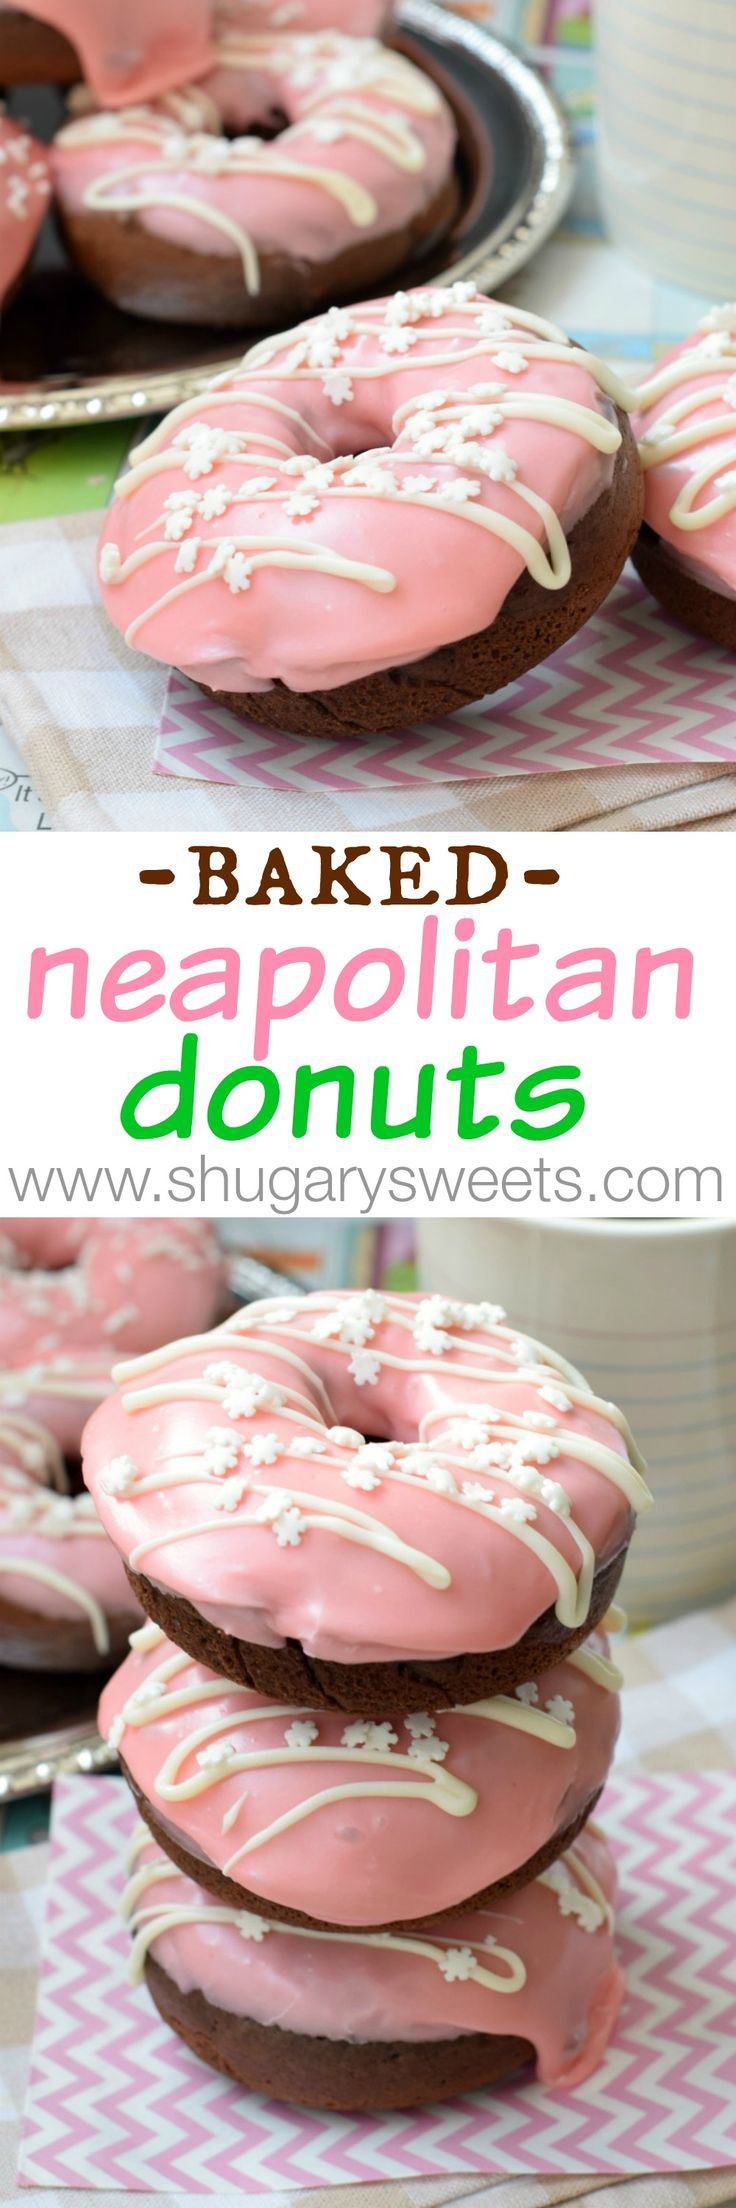 385 best Donuts images on Pinterest | Petit fours, Biscuit and Breakfast